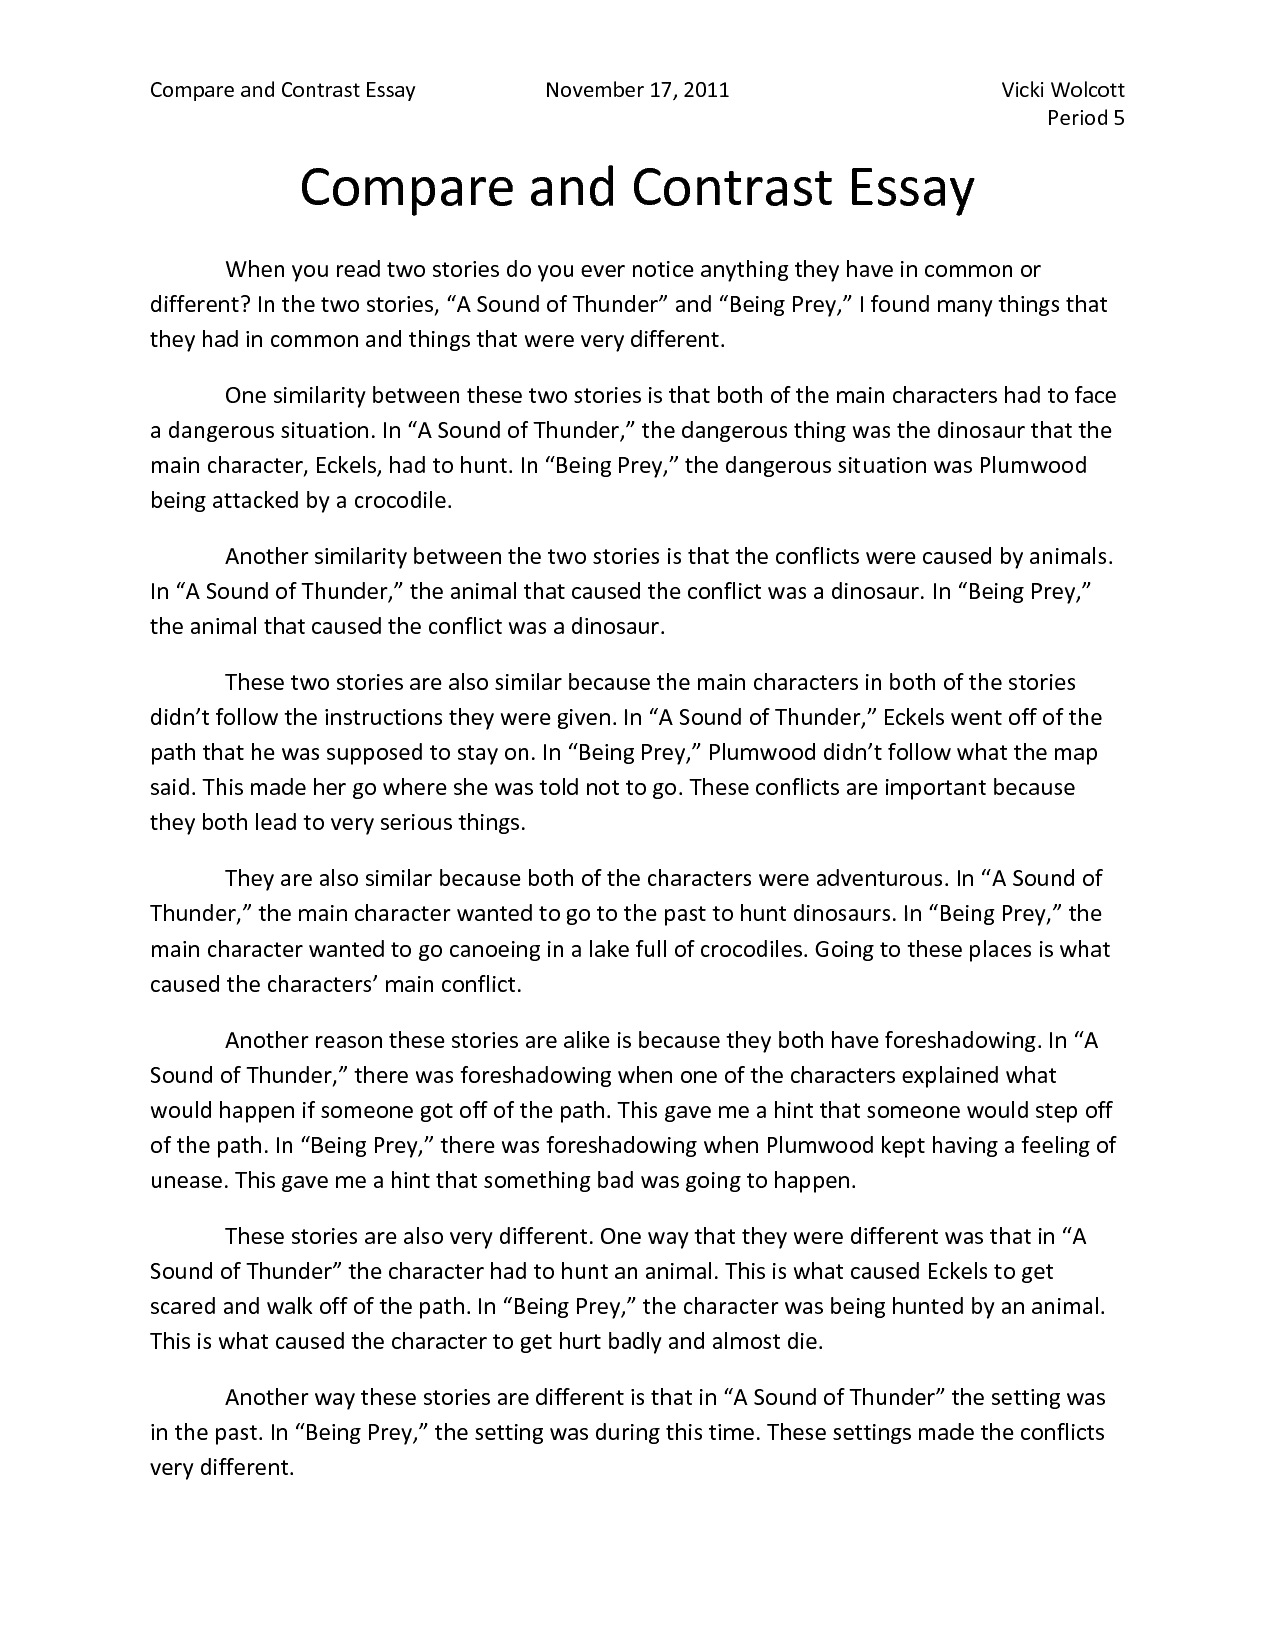 compare and contrast animals essay The 16 best compare and contrast essay topics on animals if you take biology, zoology, marine biology, or life science class, you may find you have been assigned several compare and contrast essays.